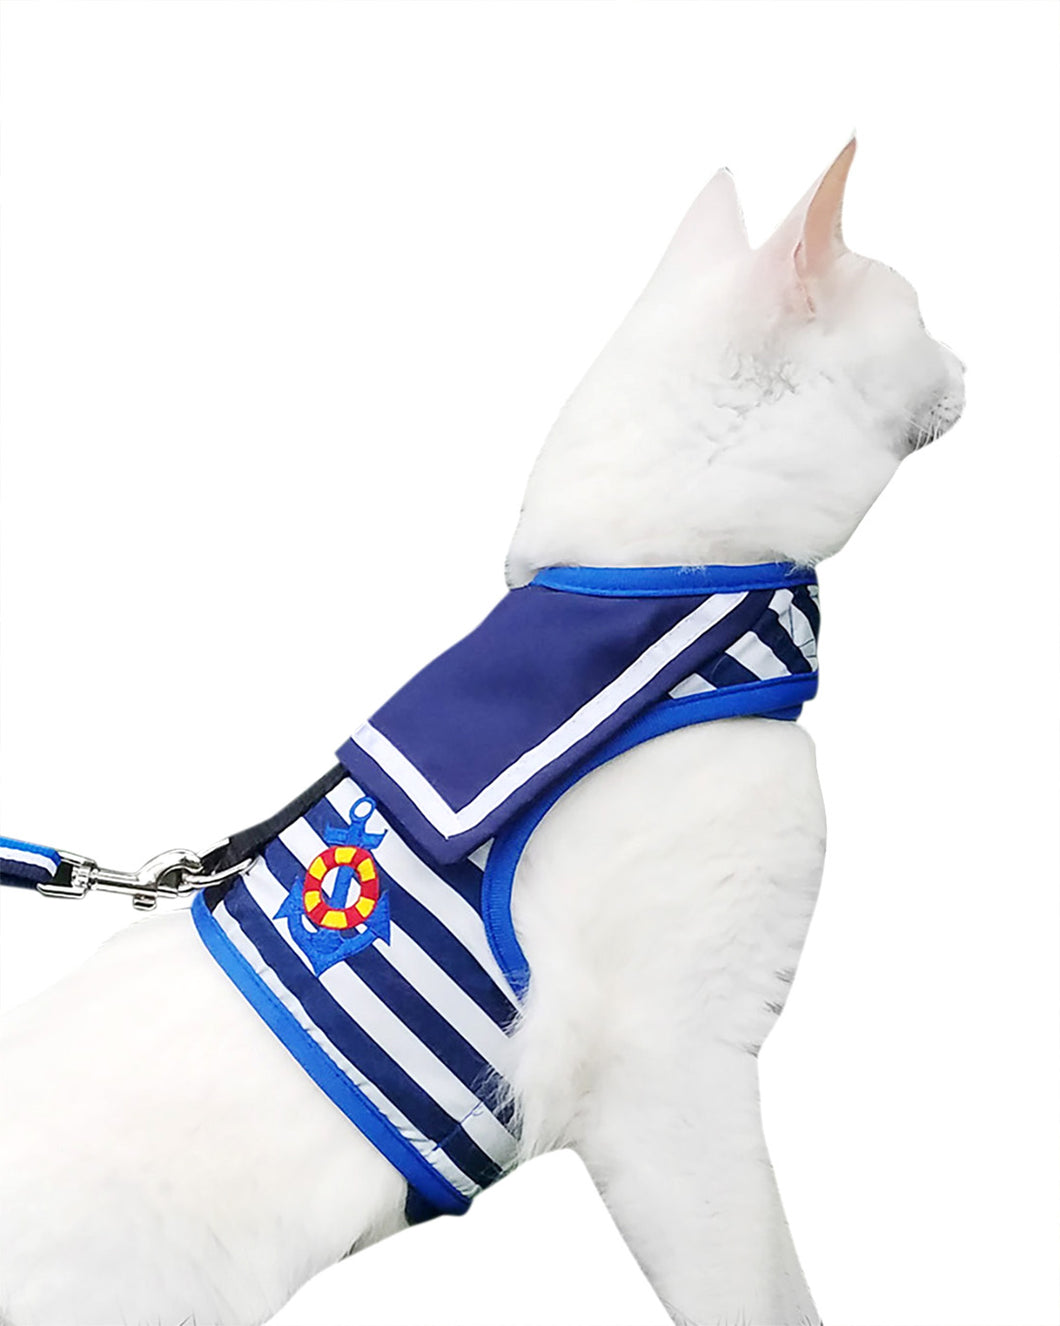 Escape Proof Cat Harness with Leash X-Small, Adjustable Cat Walking Jackets, Padded Cat Vest Sailor Suit Navy